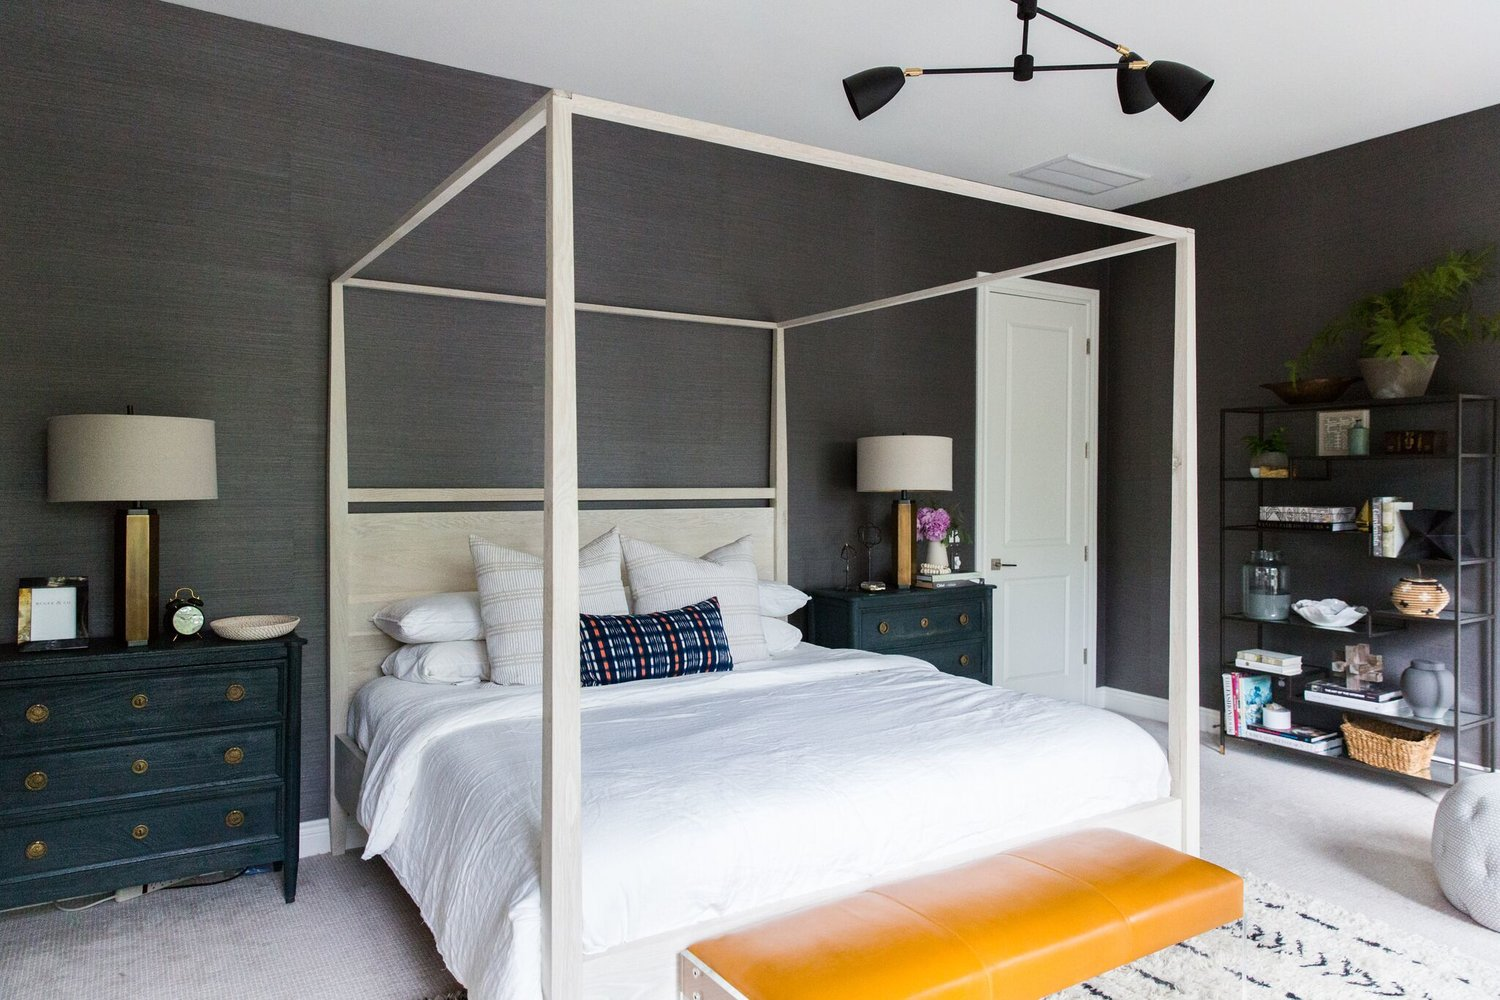 2Moody+Bohemian+Master+Bedroom+with+Dark+Grasscloth+Wallpaper,+Four+Poster+Bed,+and+Modern+Lighting.jpg